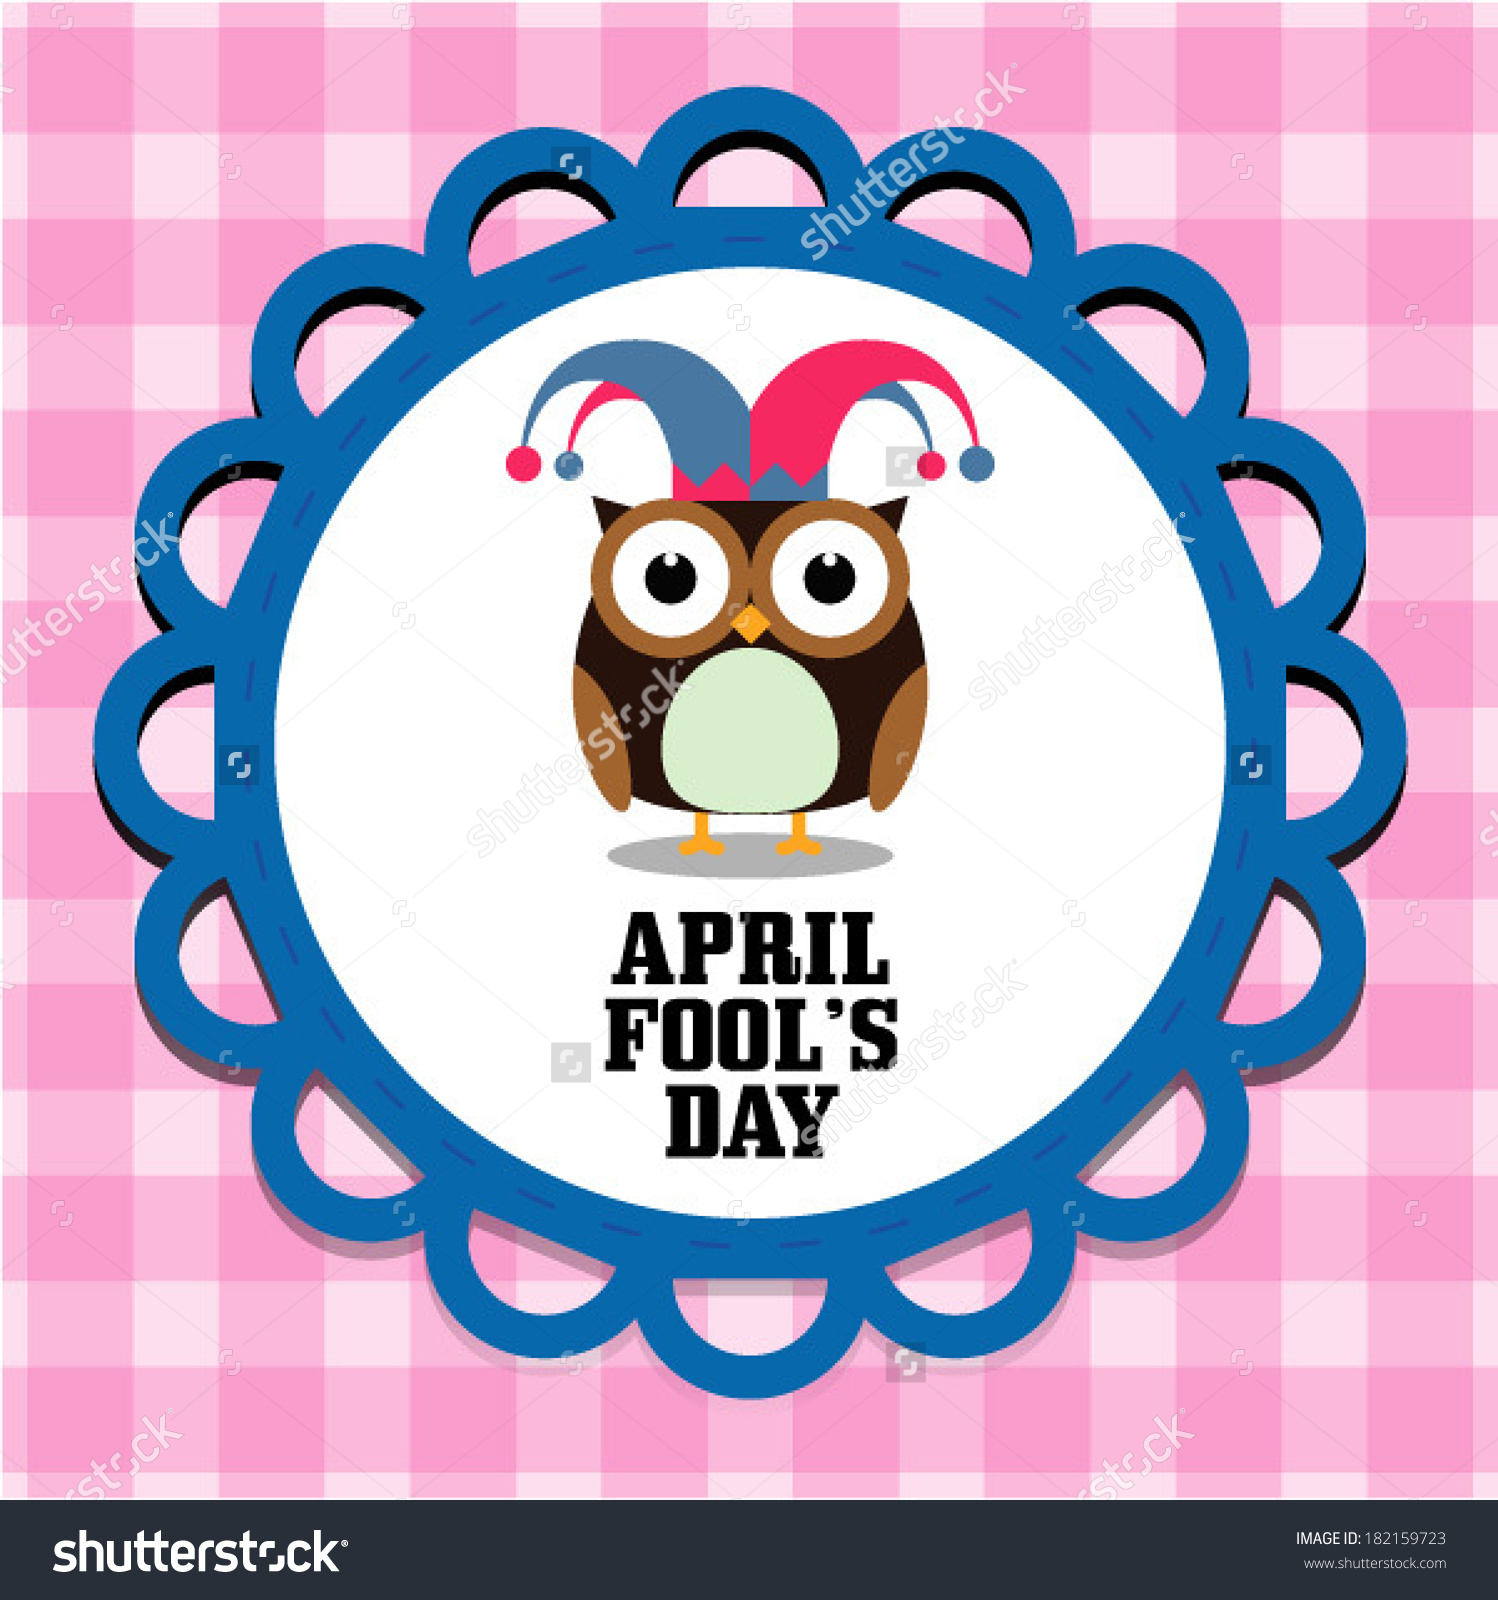 Colorful fool clipart cute clip art freeuse library April Fools Day Message Cute Owl Stock Vector 182159723 - Shutterstock clip art freeuse library